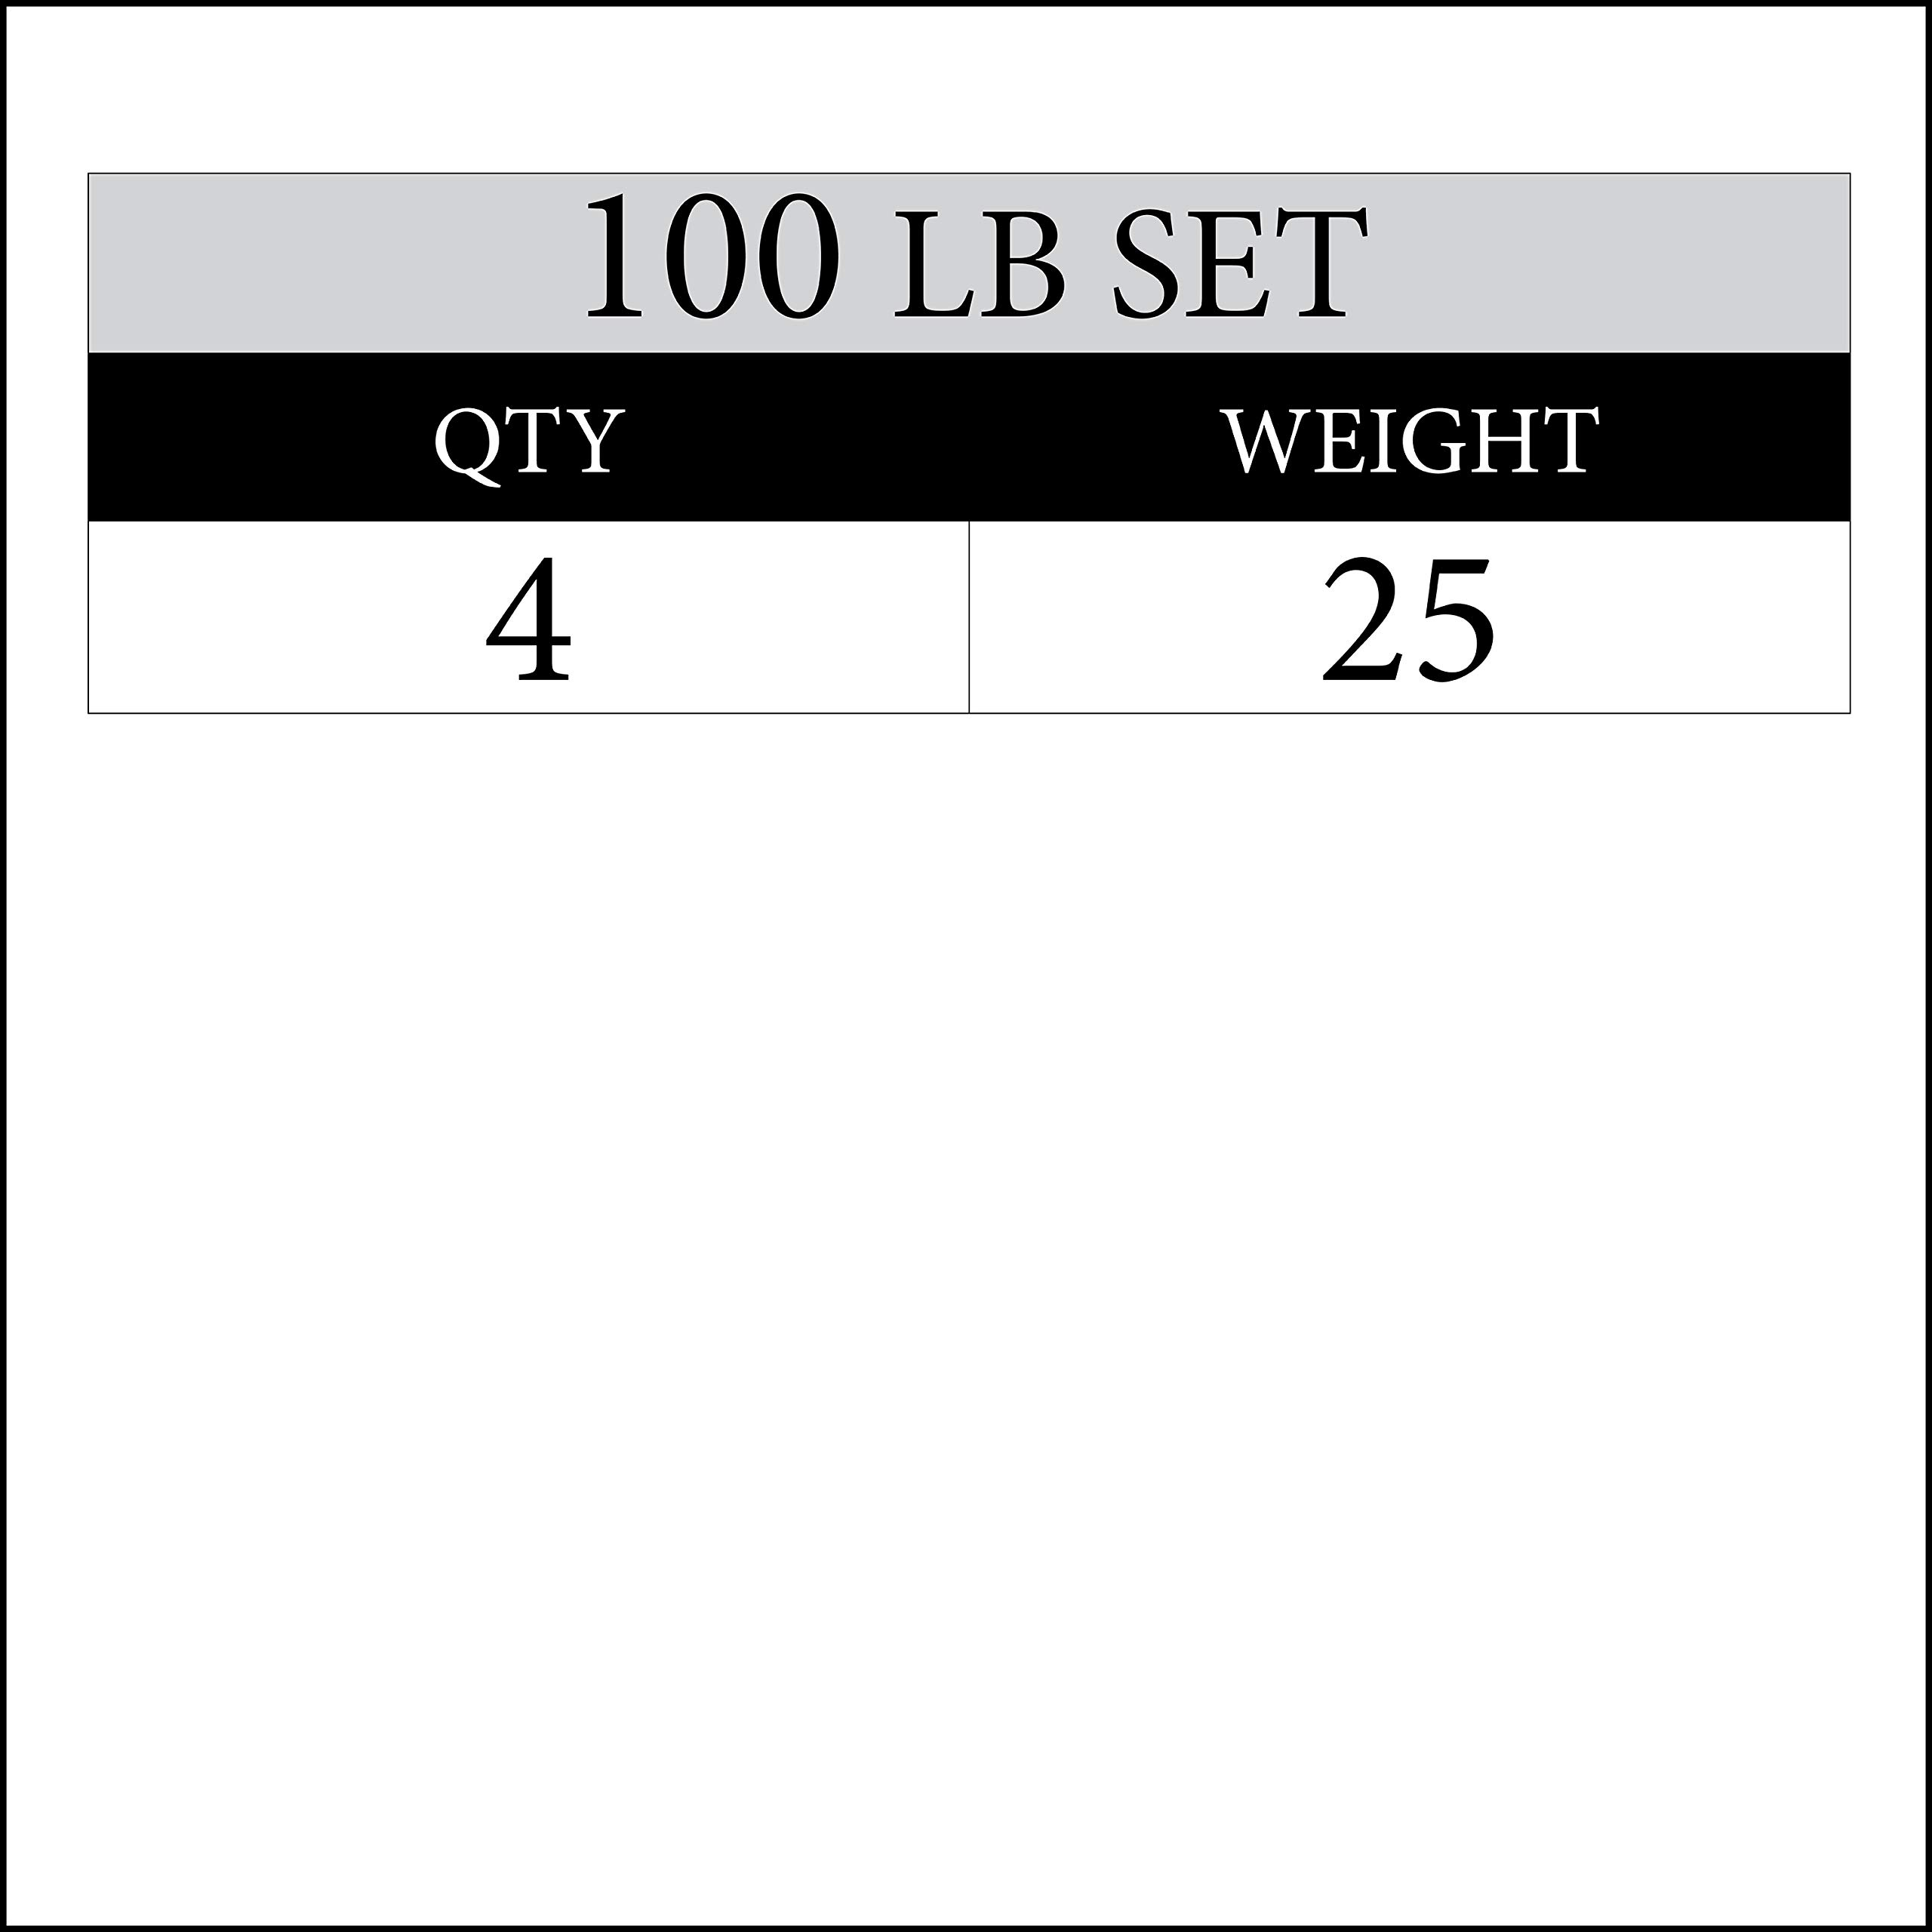 XMark 100 lb Set Signature Plates, One-Year Warranty, Olympic Weight Plates, Cutting-Edge Design by XMark Fitness (Image #2)